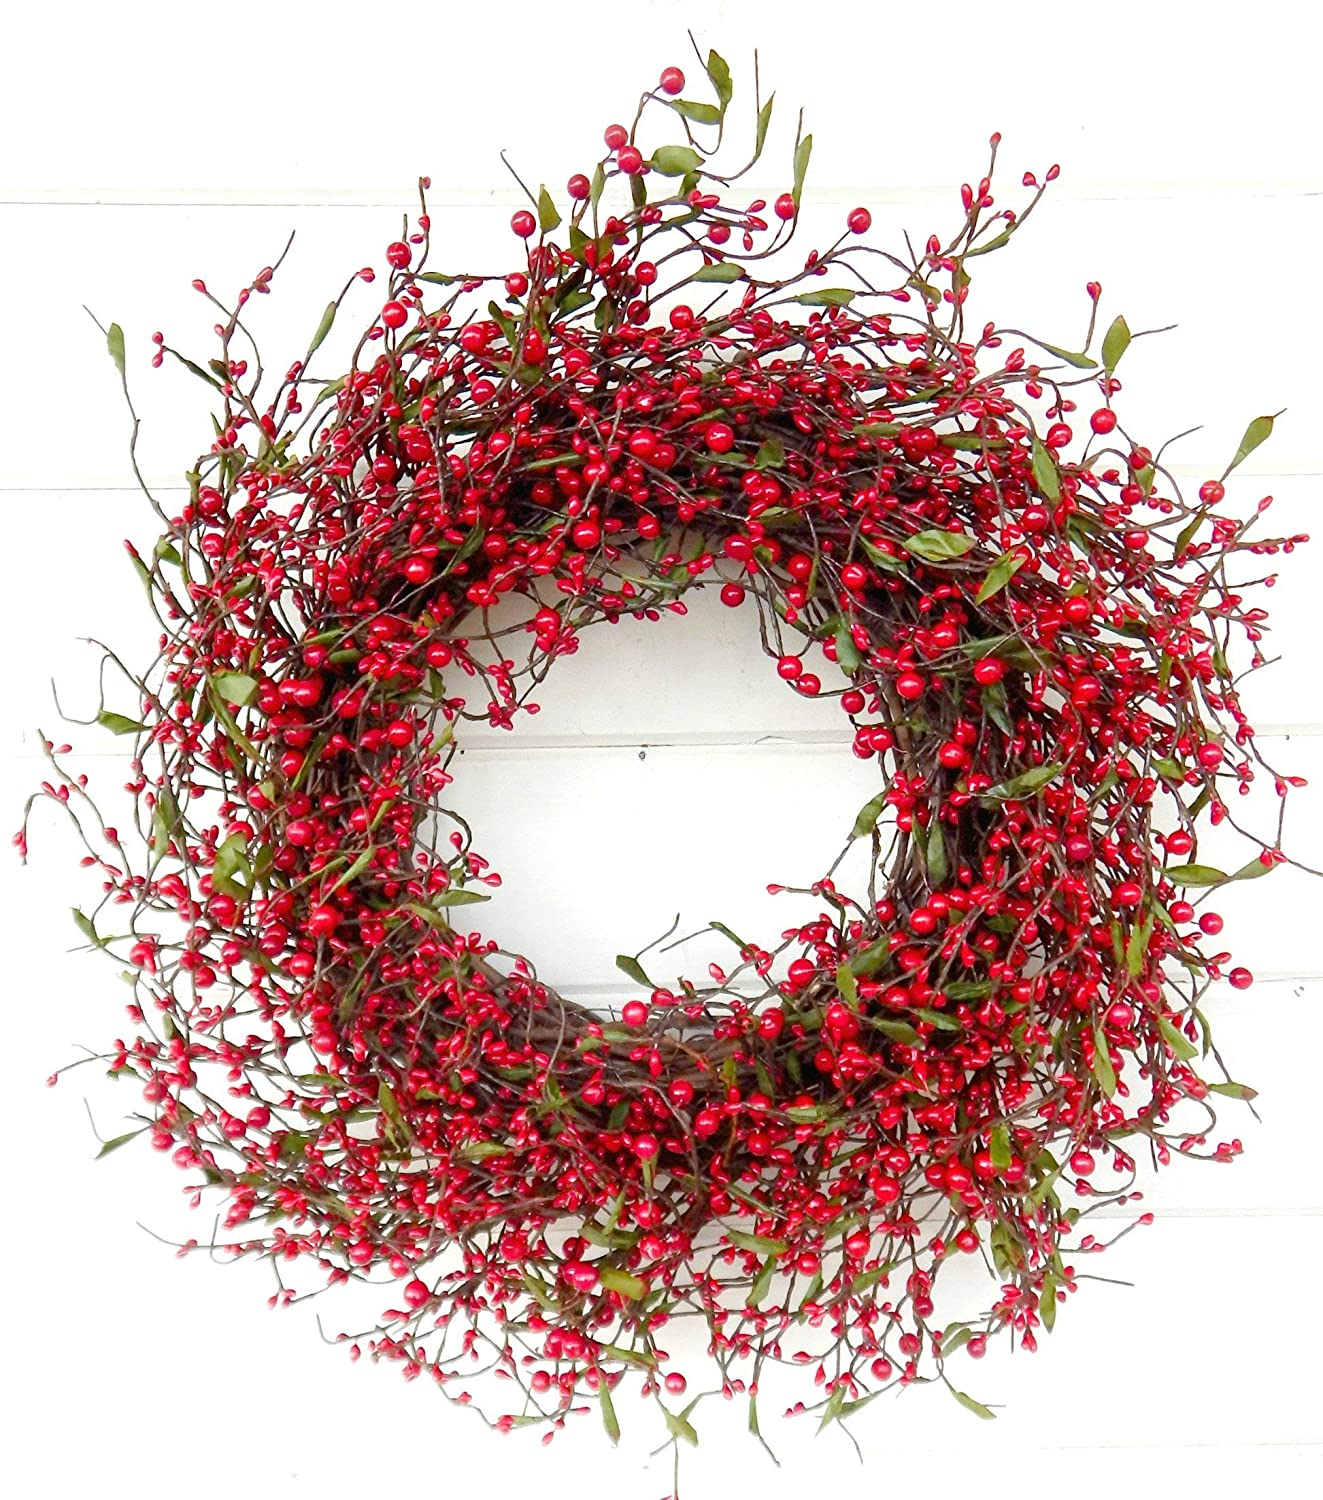 Farmhouse Wreath Decor Ranking TOP4 Online limited product Winter Summer